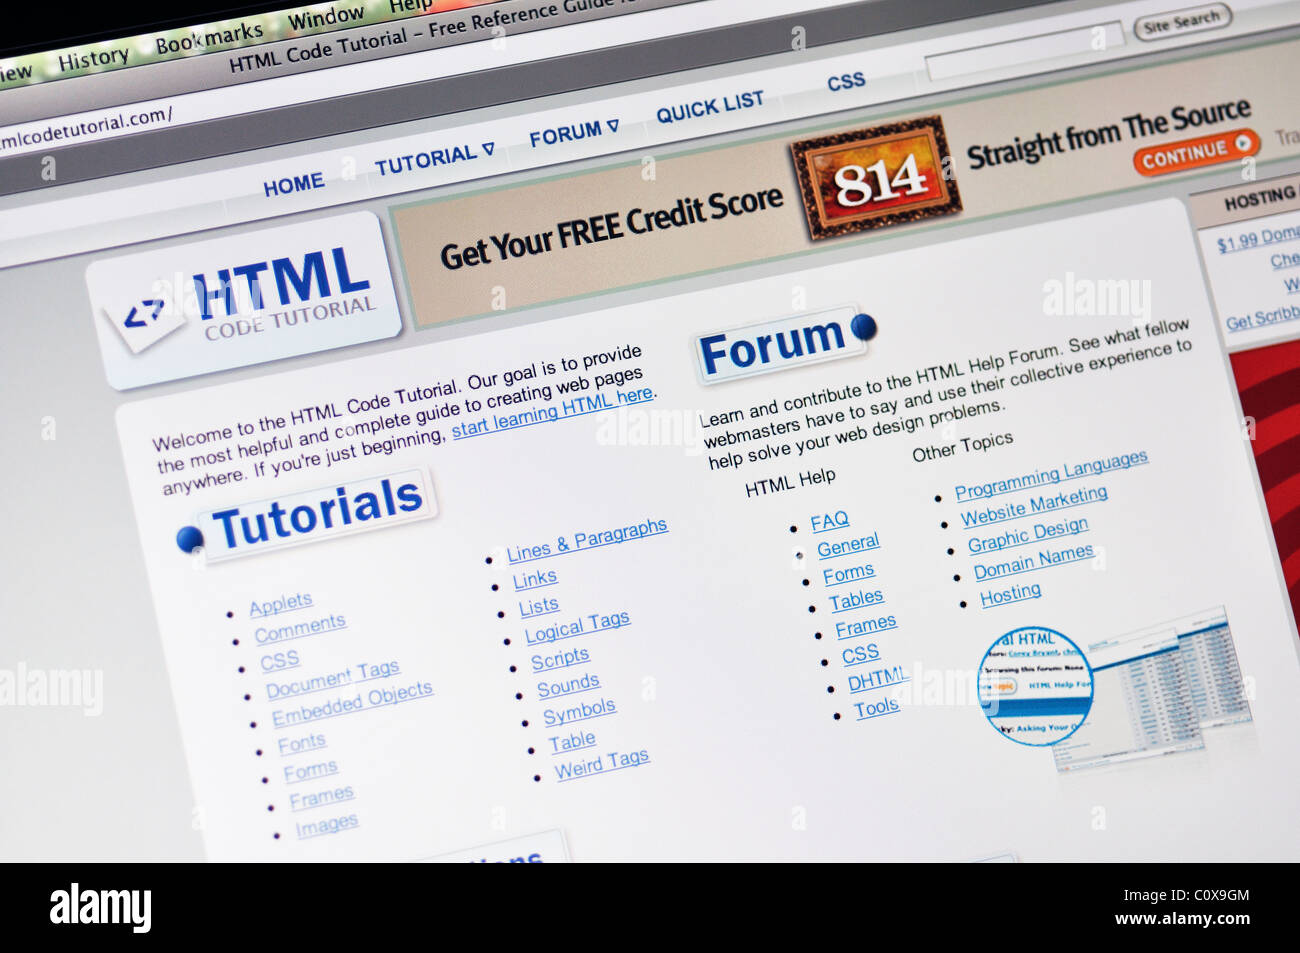 Www Htmlcodetutorial Com Website Html Code Tutorial For Learning Stock Photo Alamy